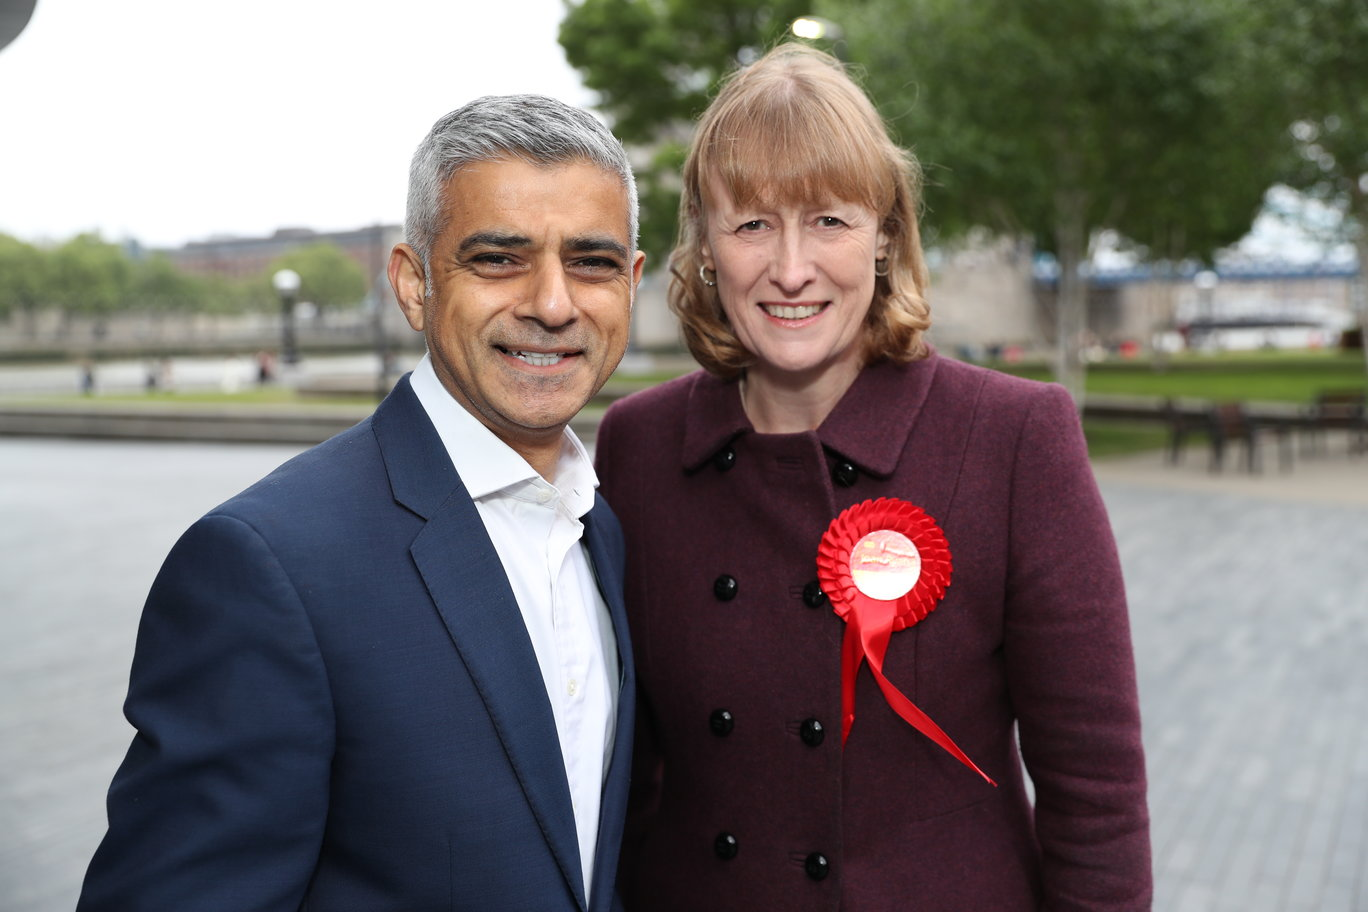 rsz_joan_ryan_mp_and_sadiq_khan_7.jpg